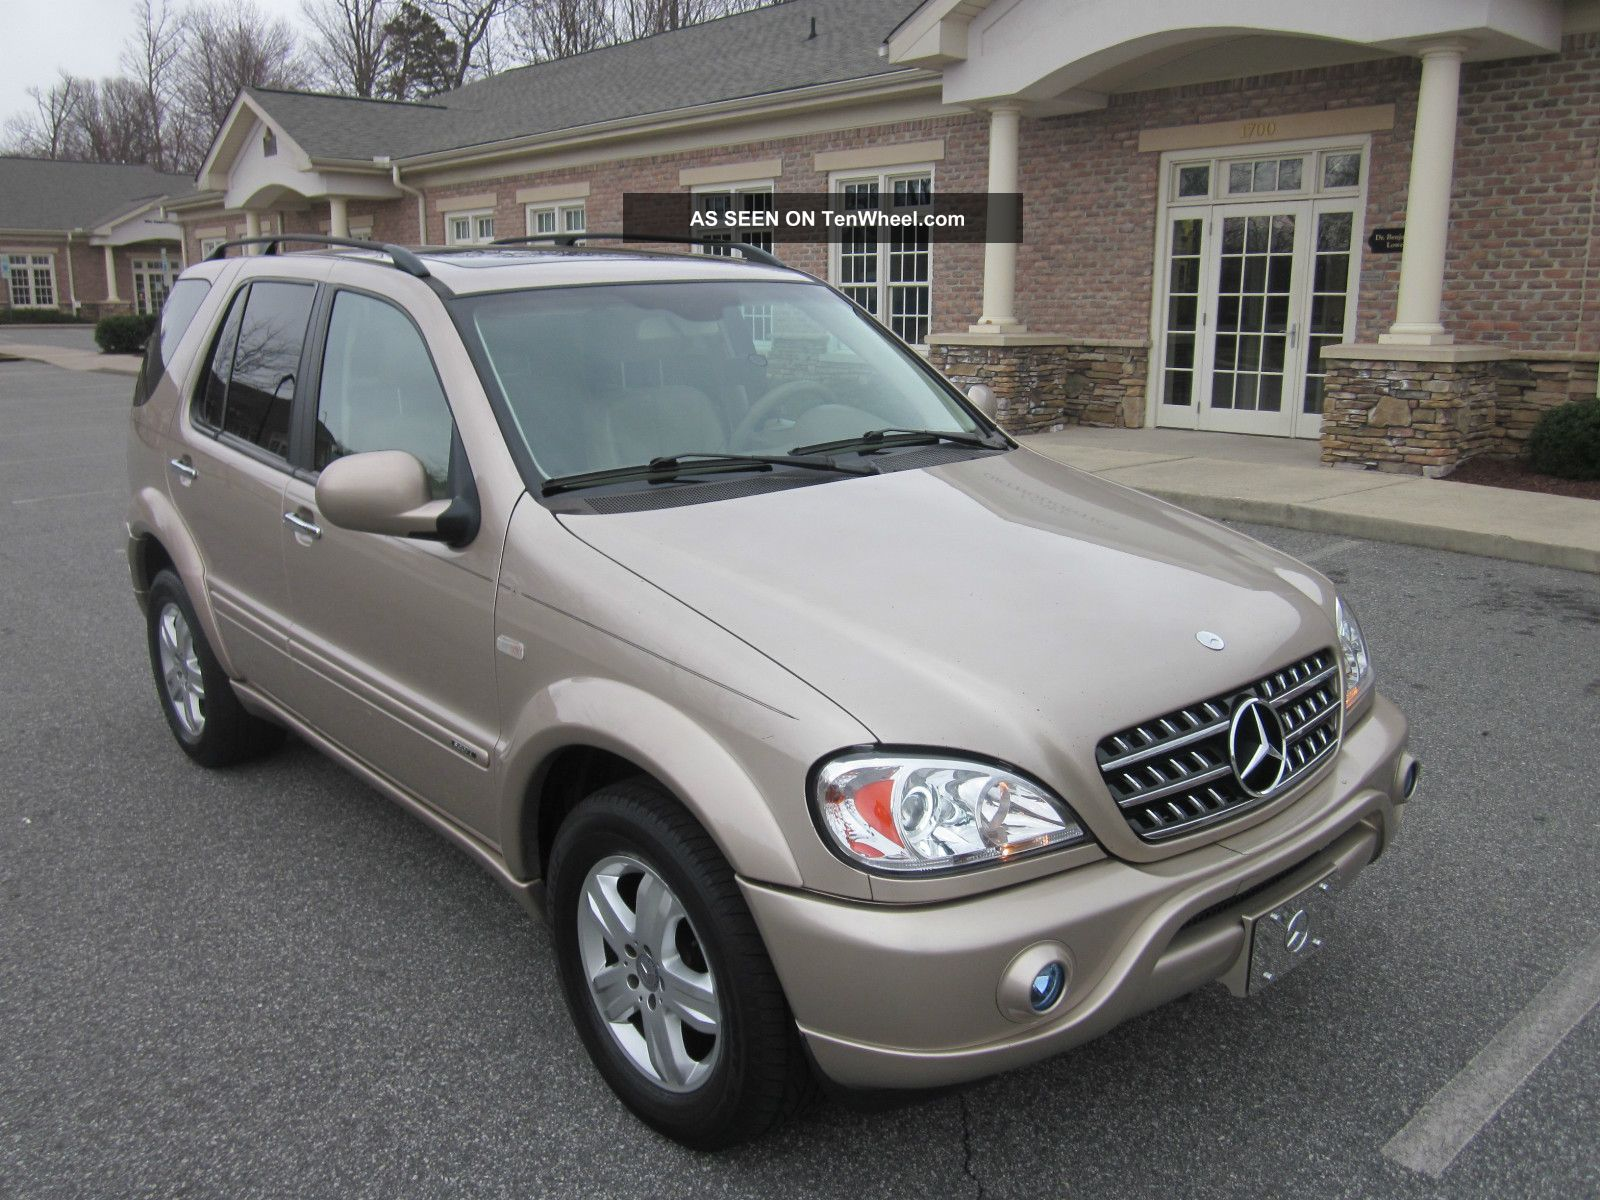 2010 spec updated 2001 ml320 mercedes benz suv sport w for Mercedes benz suv 2001